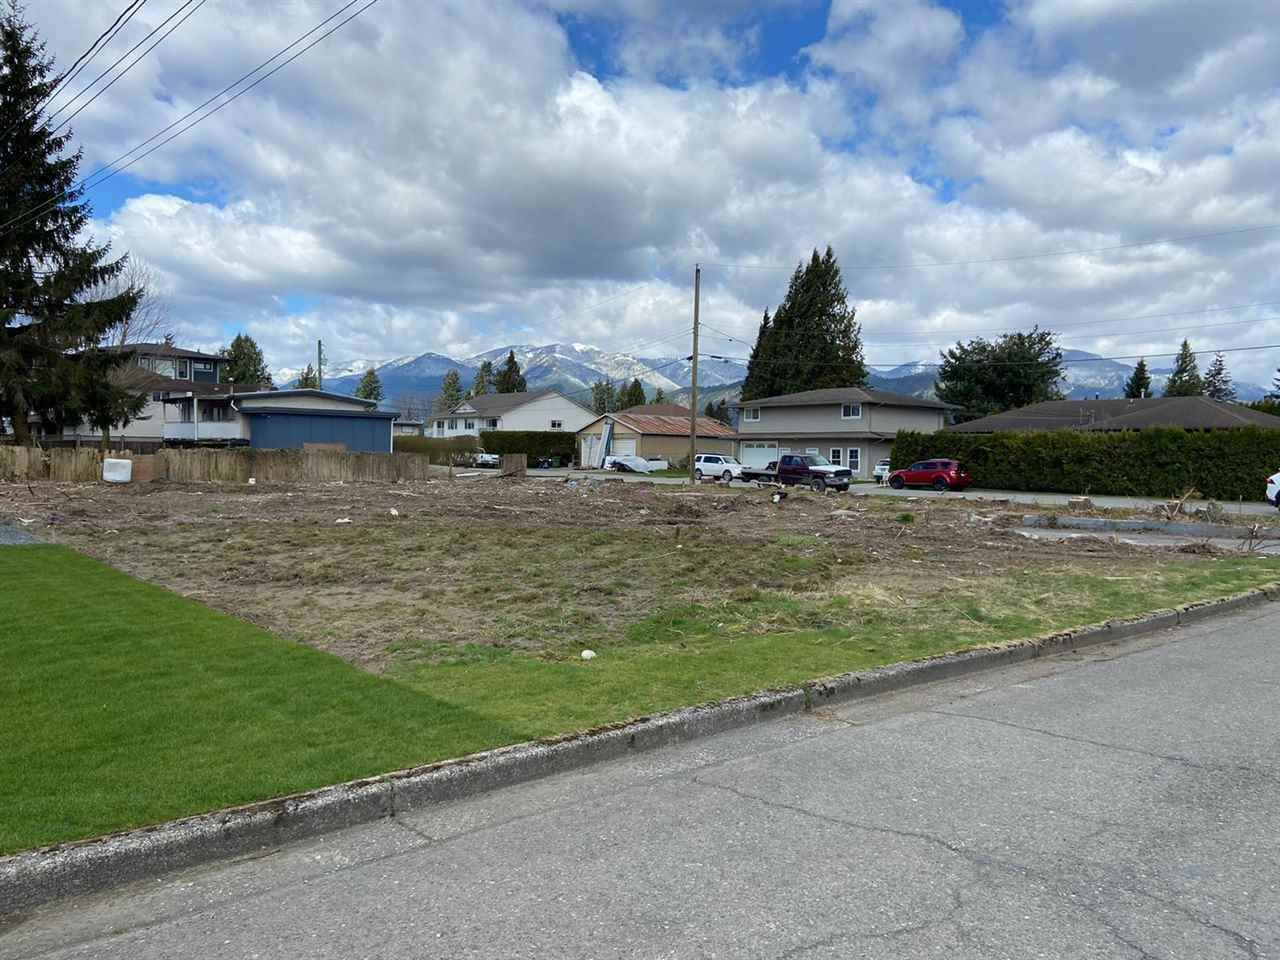 Main Photo: 9525 WINDSOR Street in Chilliwack: Chilliwack E Young-Yale Land for sale : MLS®# R2591521